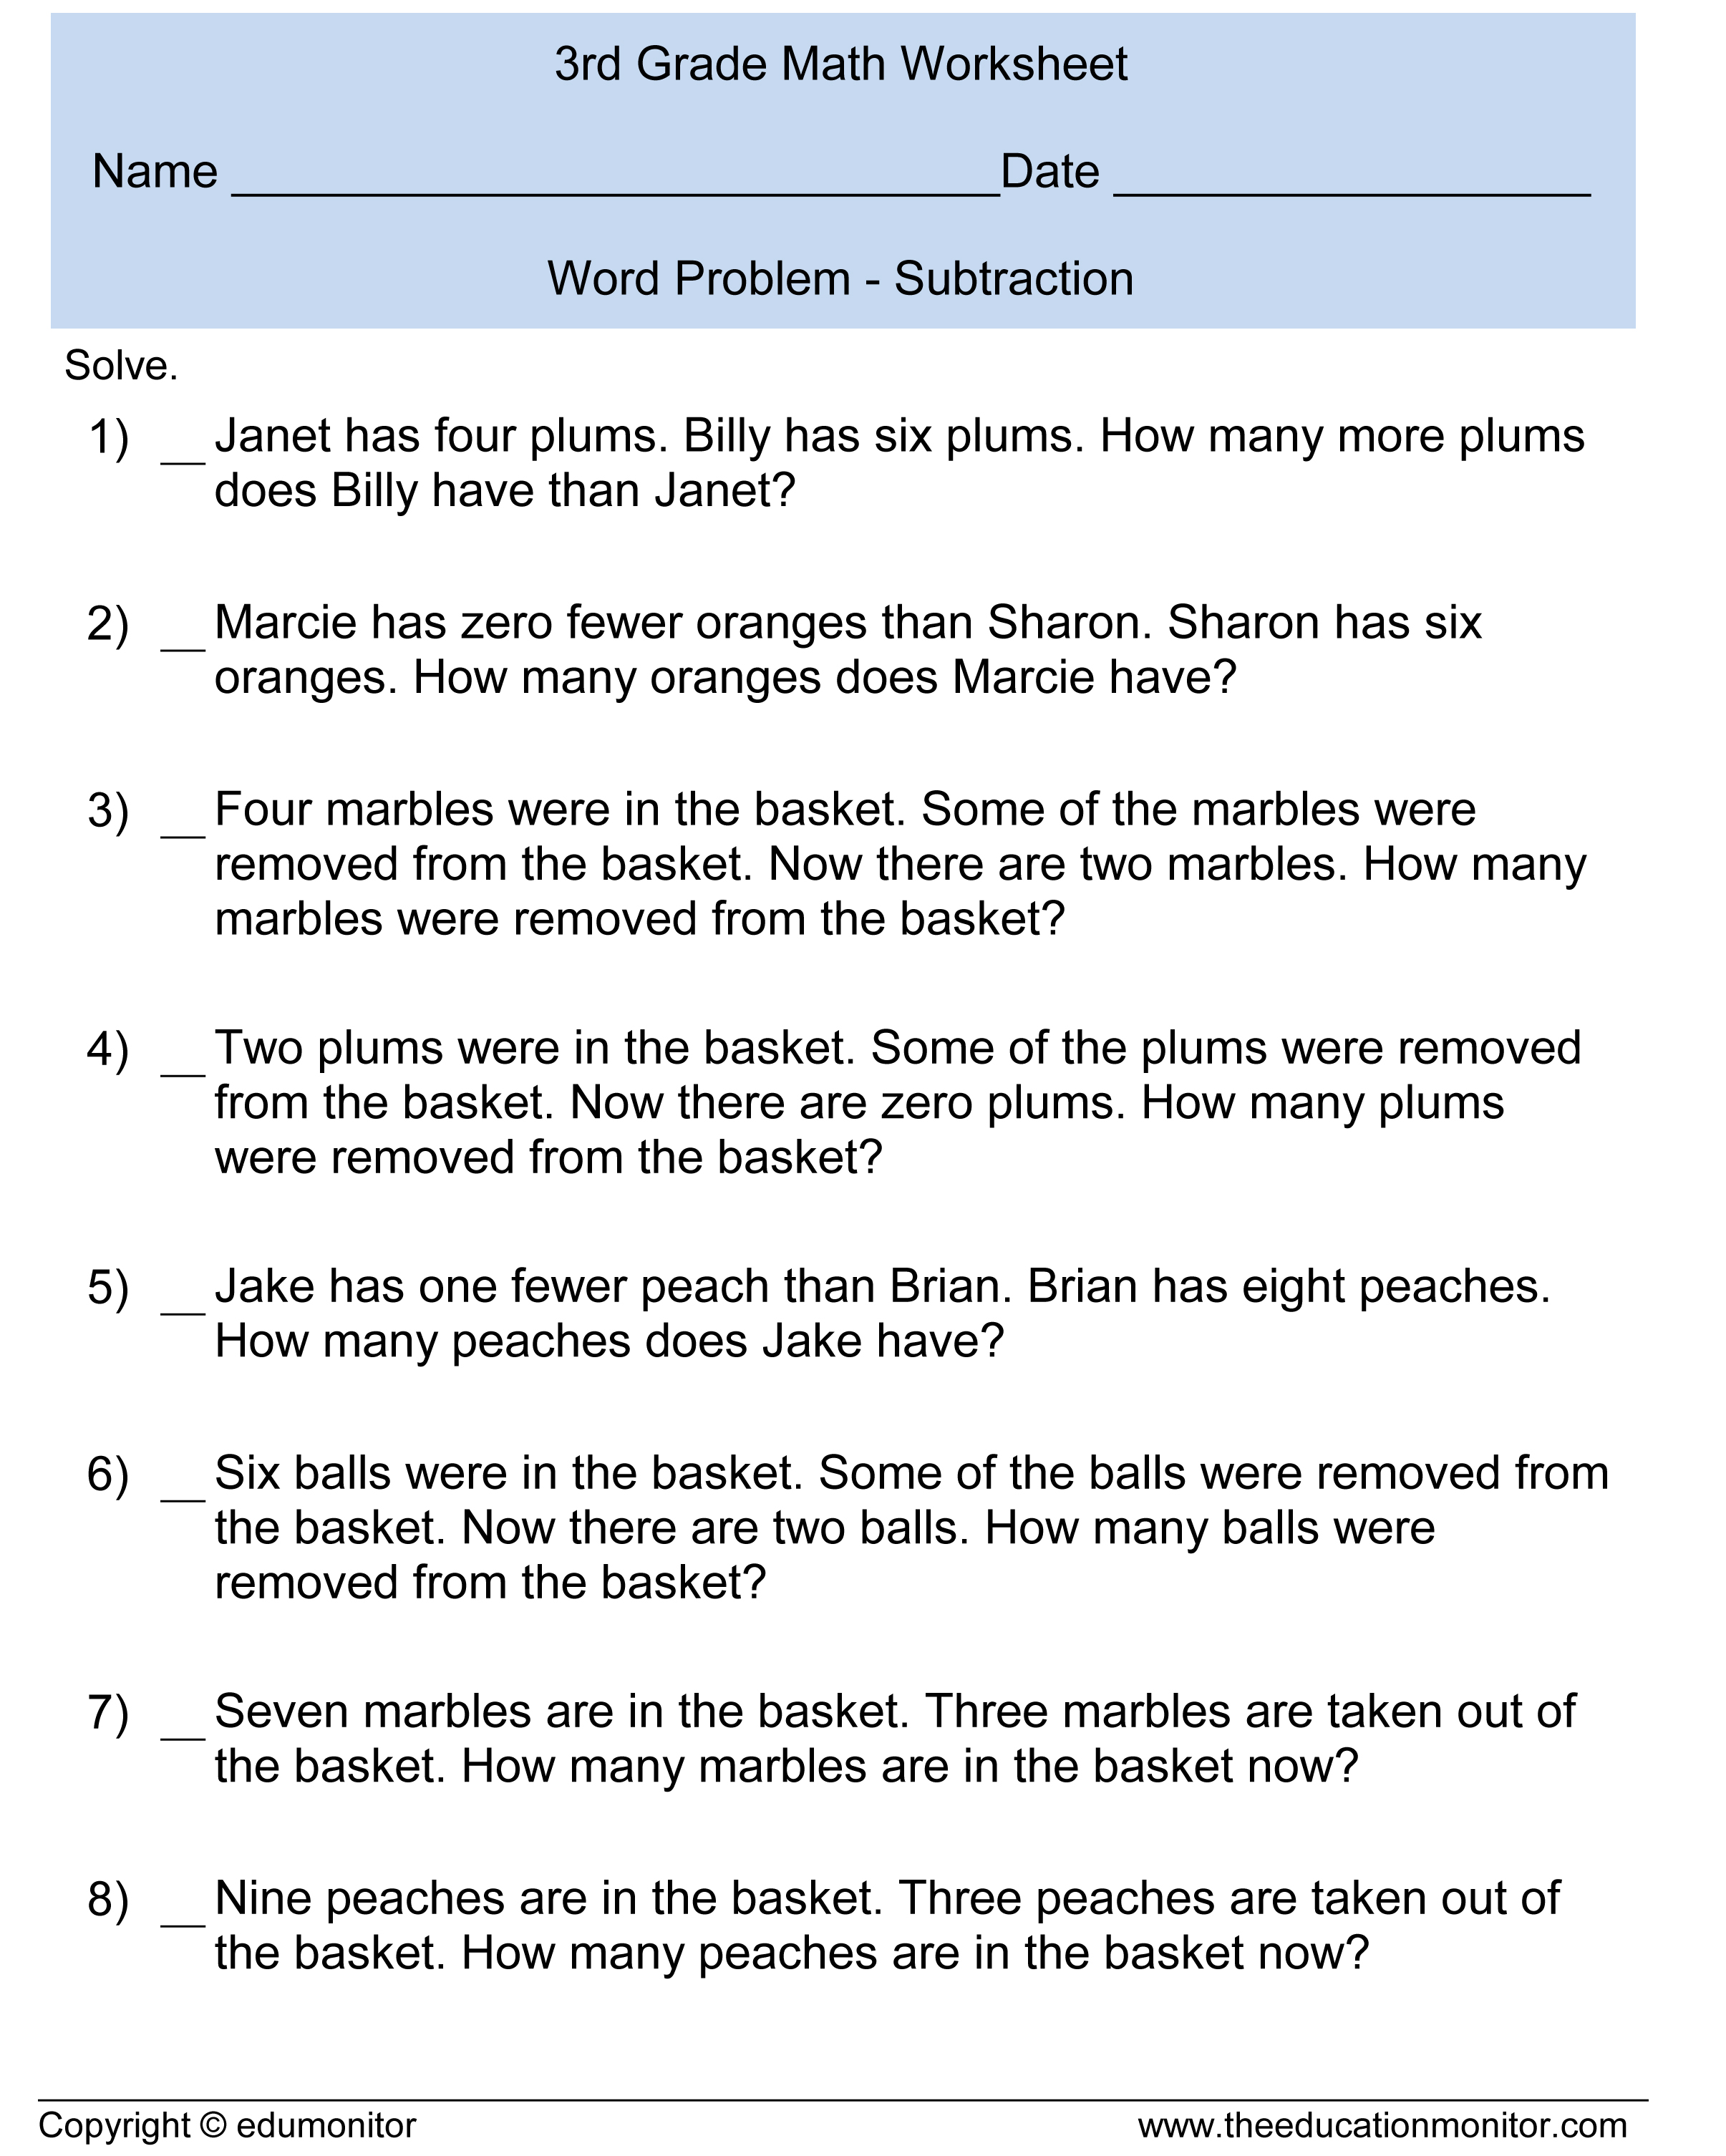 3rd Grade Math Fraction Word Problems Worksheets Worksheet Kids – 3rd Grade Math Word Problem Worksheets